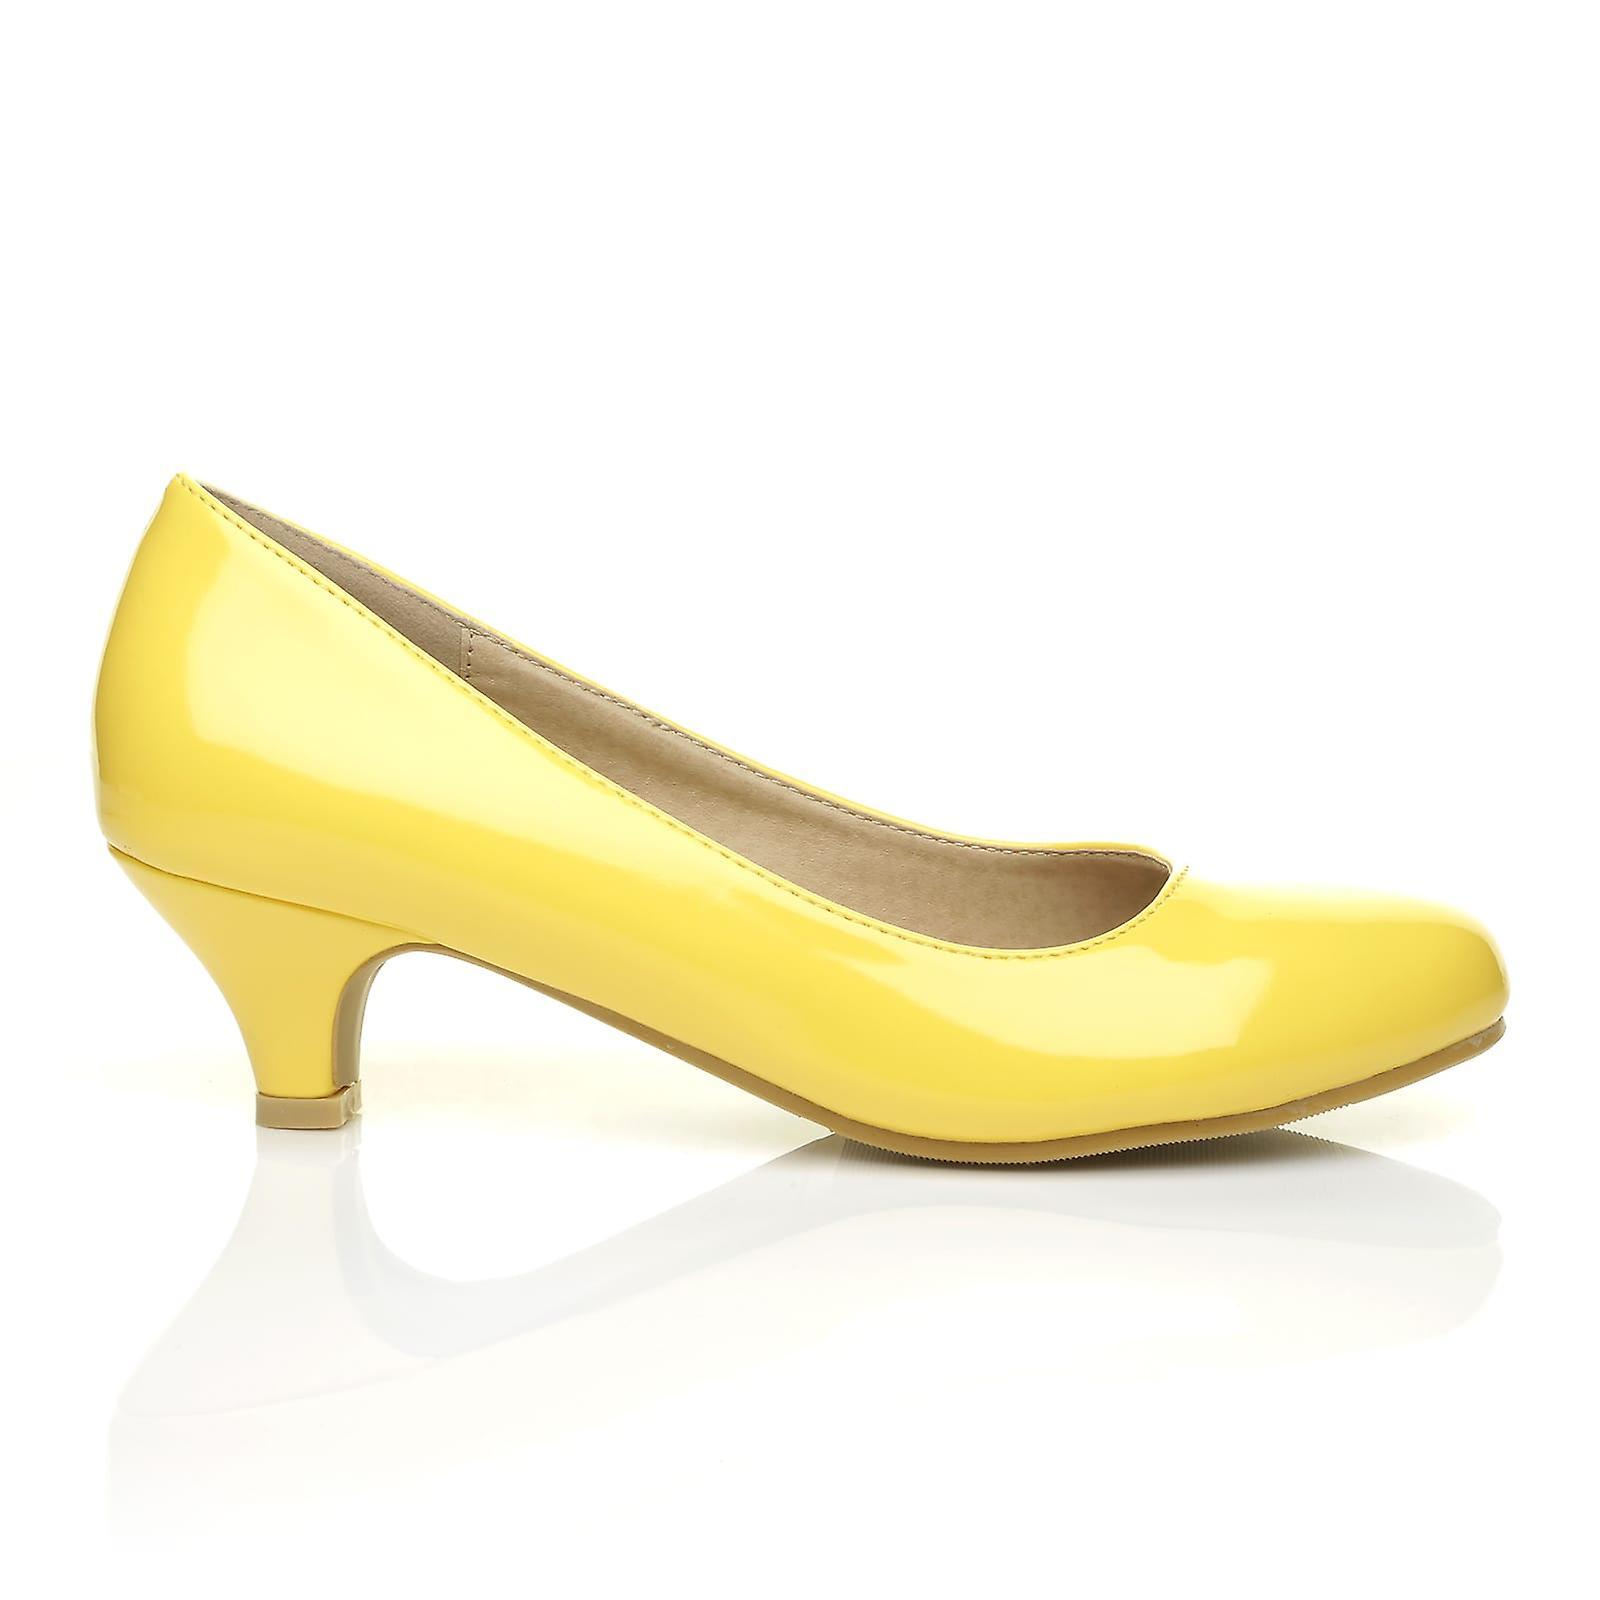 CHARM Round Yellow Patent PU Leather Low Heel Round CHARM Toe Comfort Court Shoes 05003b